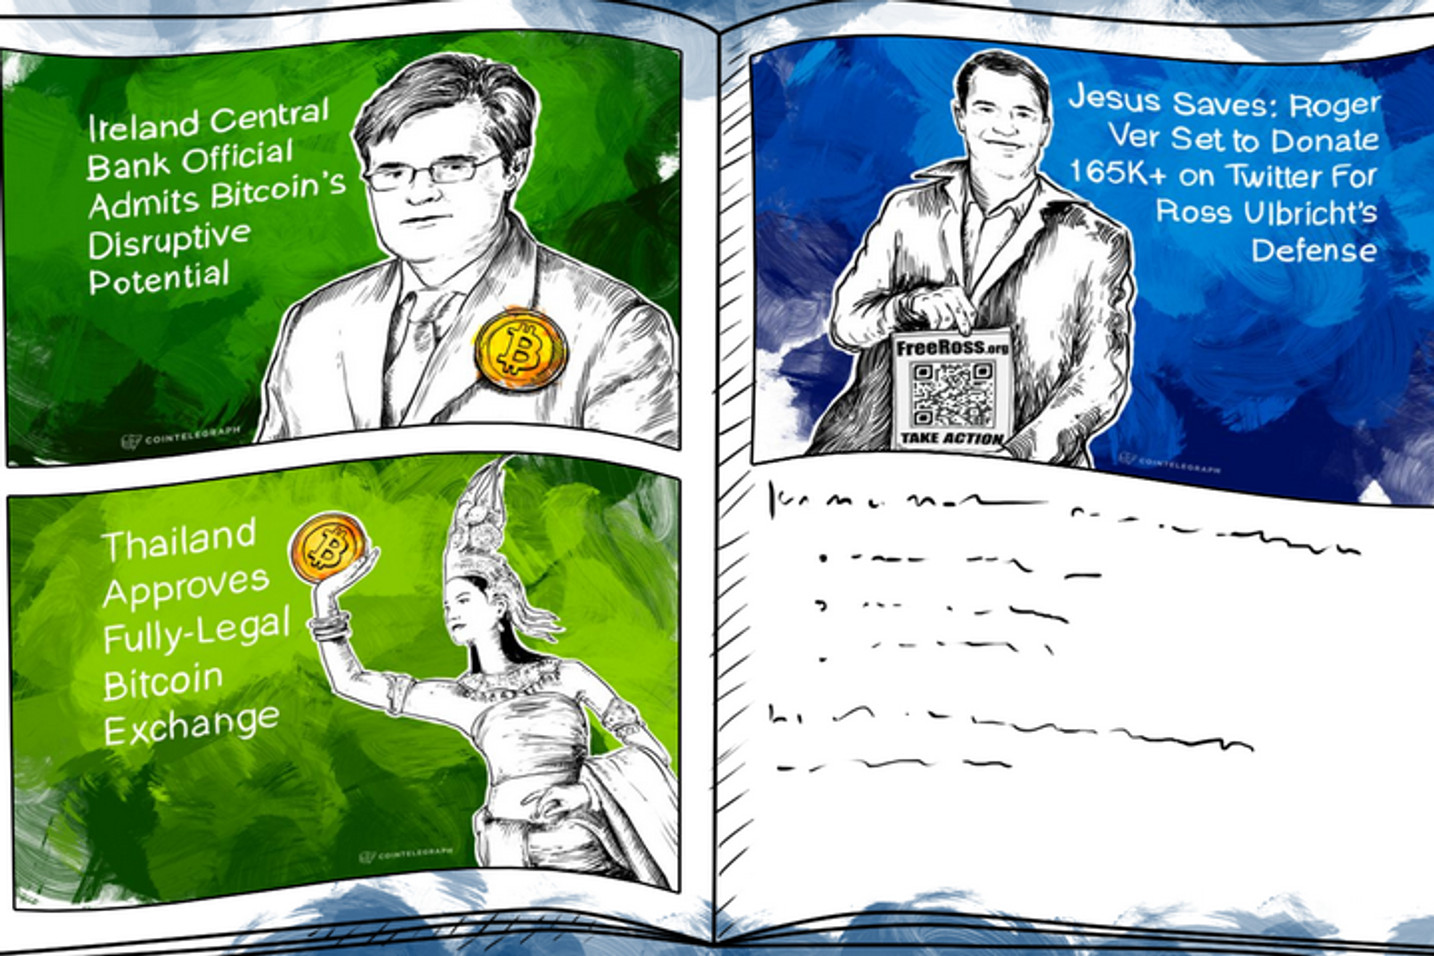 Weekend Roundup: New Exchanges in Thailand and Vietnam; Roger Ver Raises Money for Ulbricht's Defense Fund